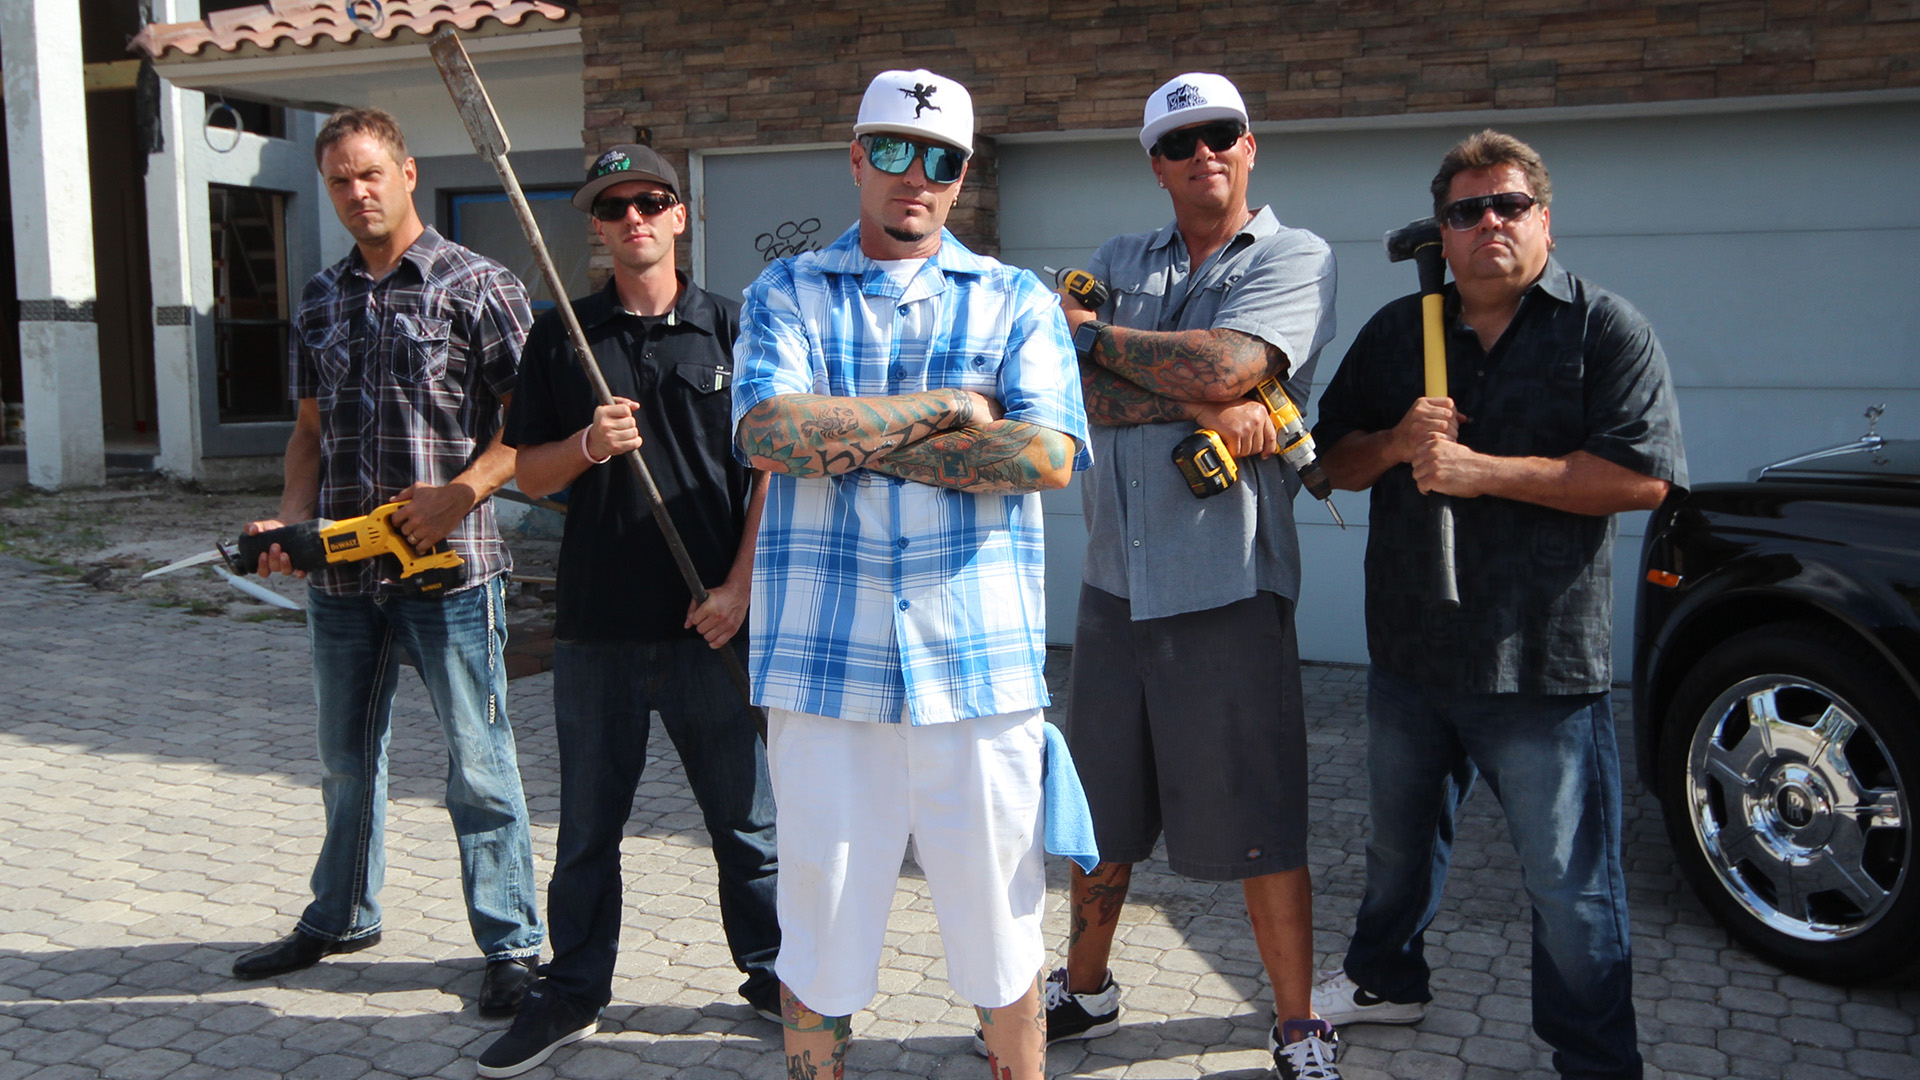 The vanilla ice project Better homes and gardens episode last night